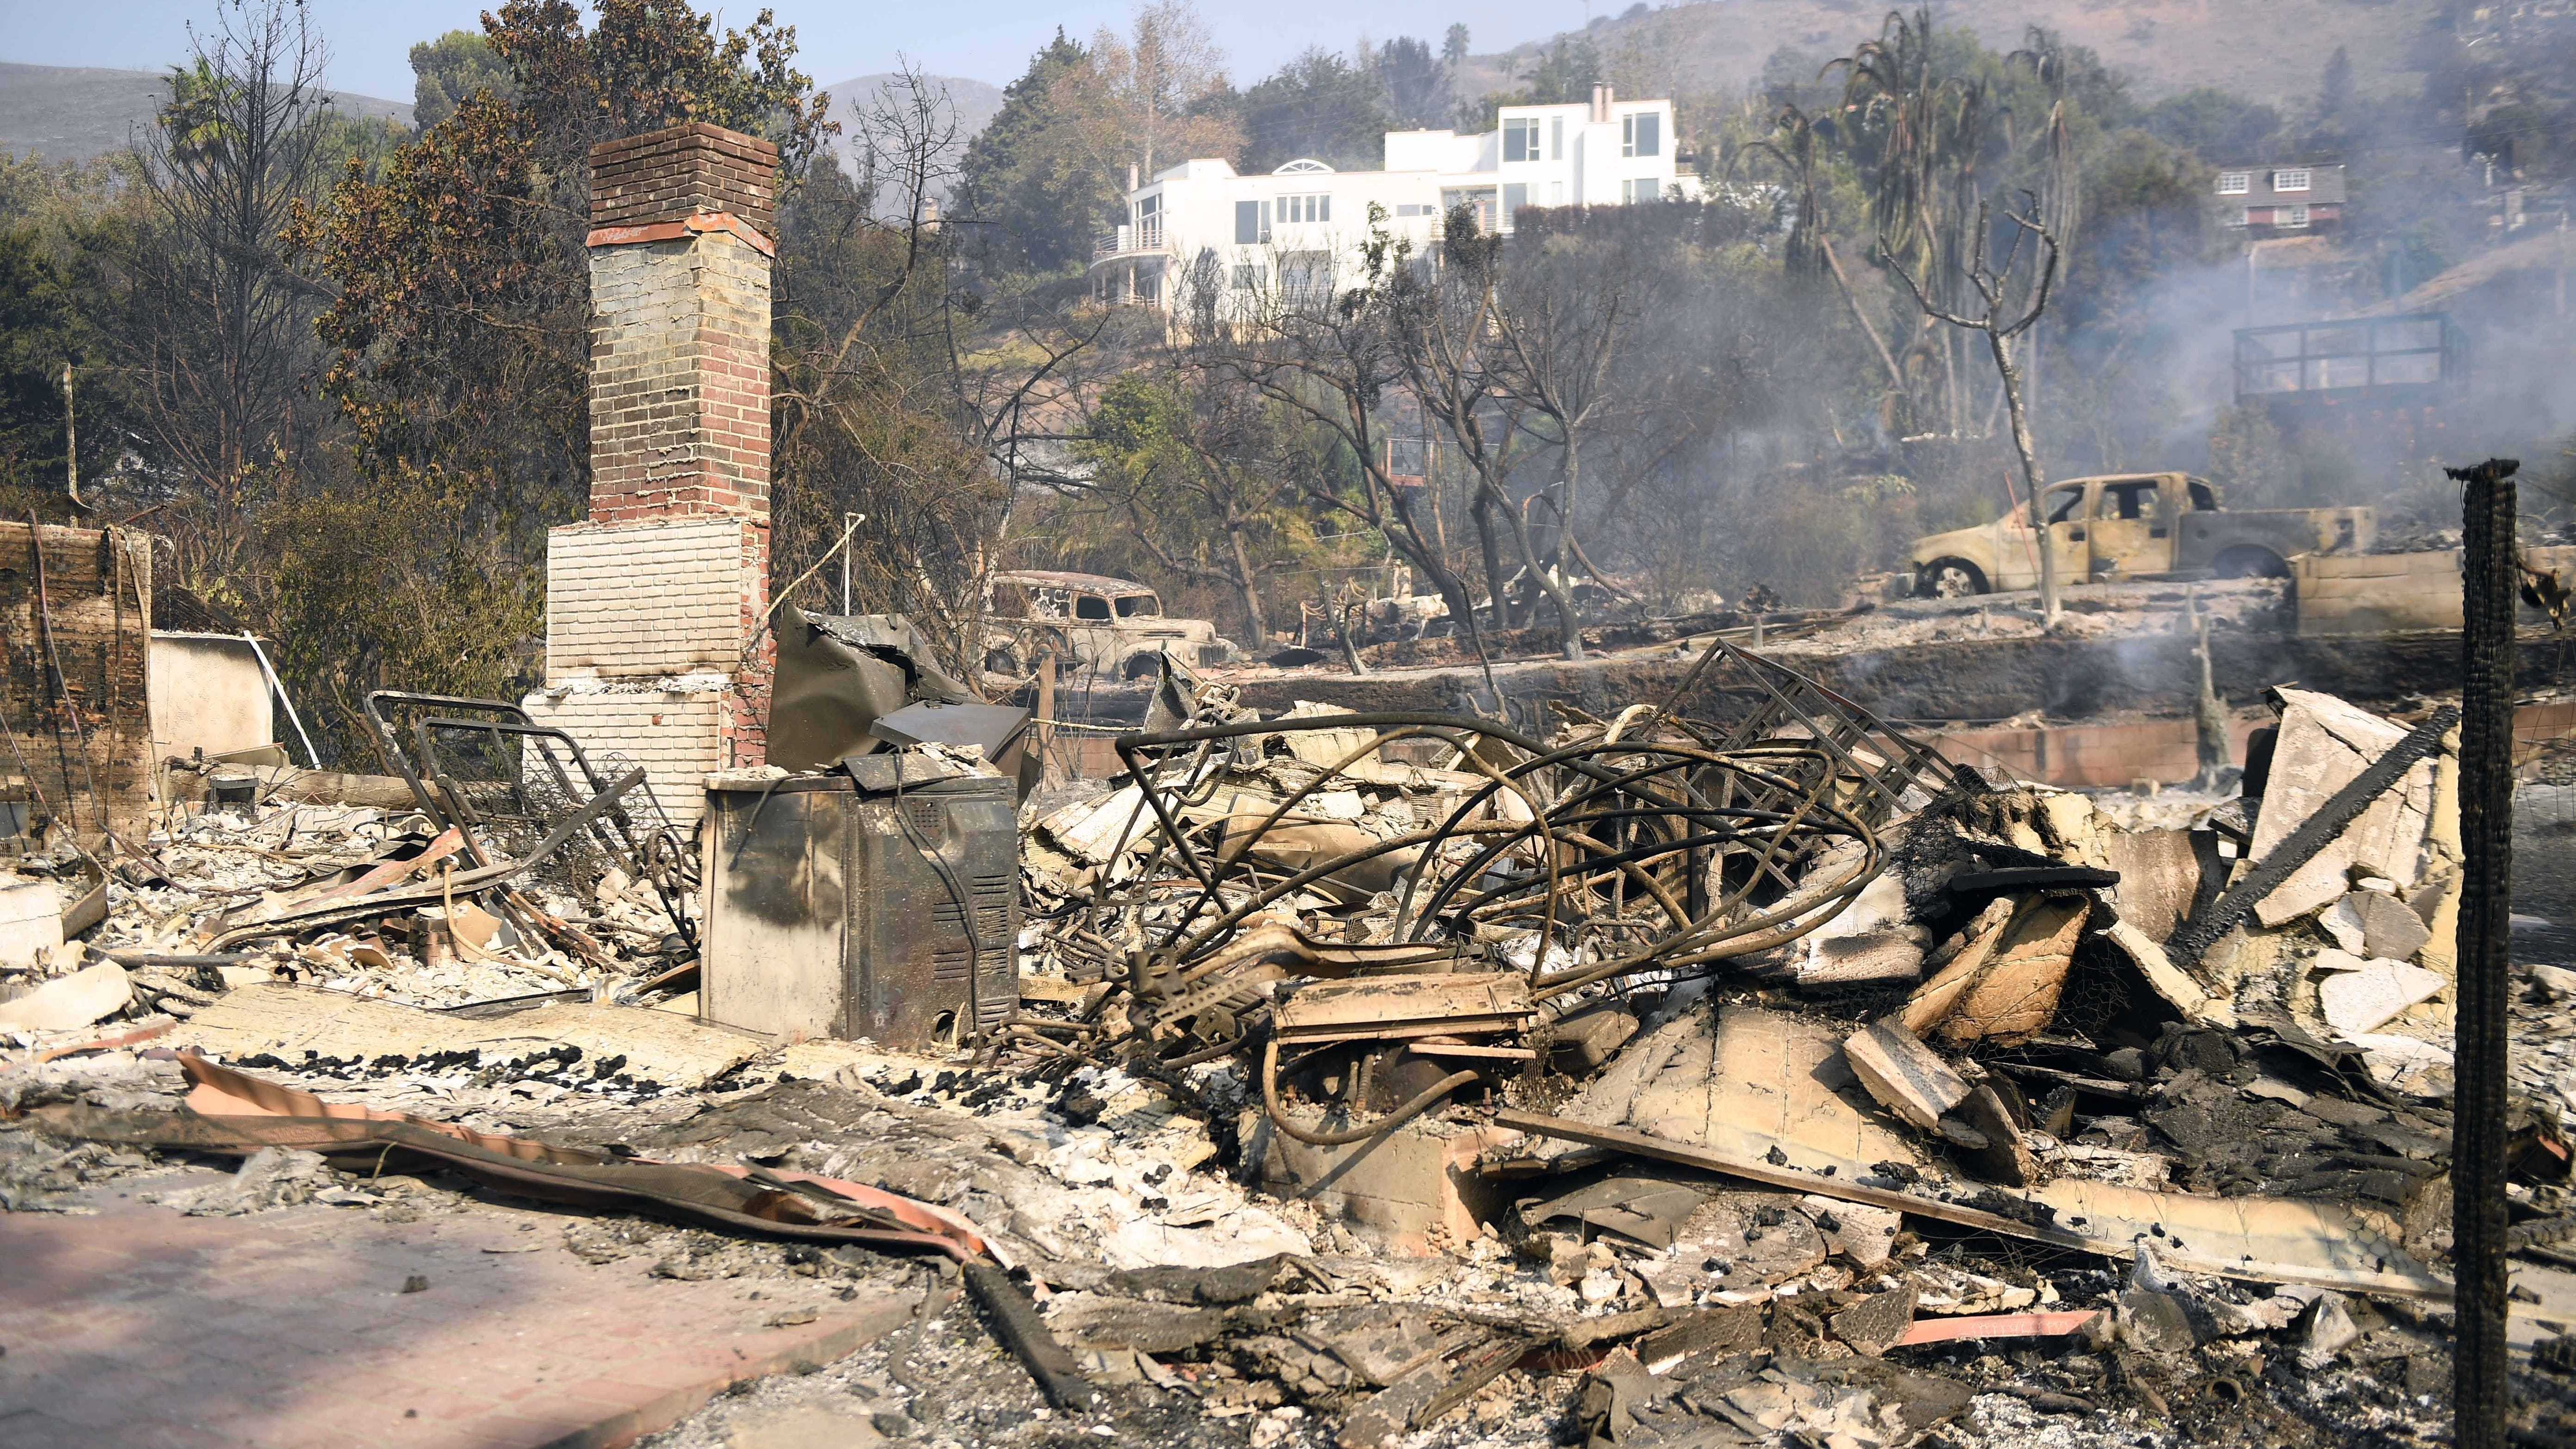 The charred remains of a home in Malibu, Calif. on Nov. 11, 2018 caused by the Woosley Fire.